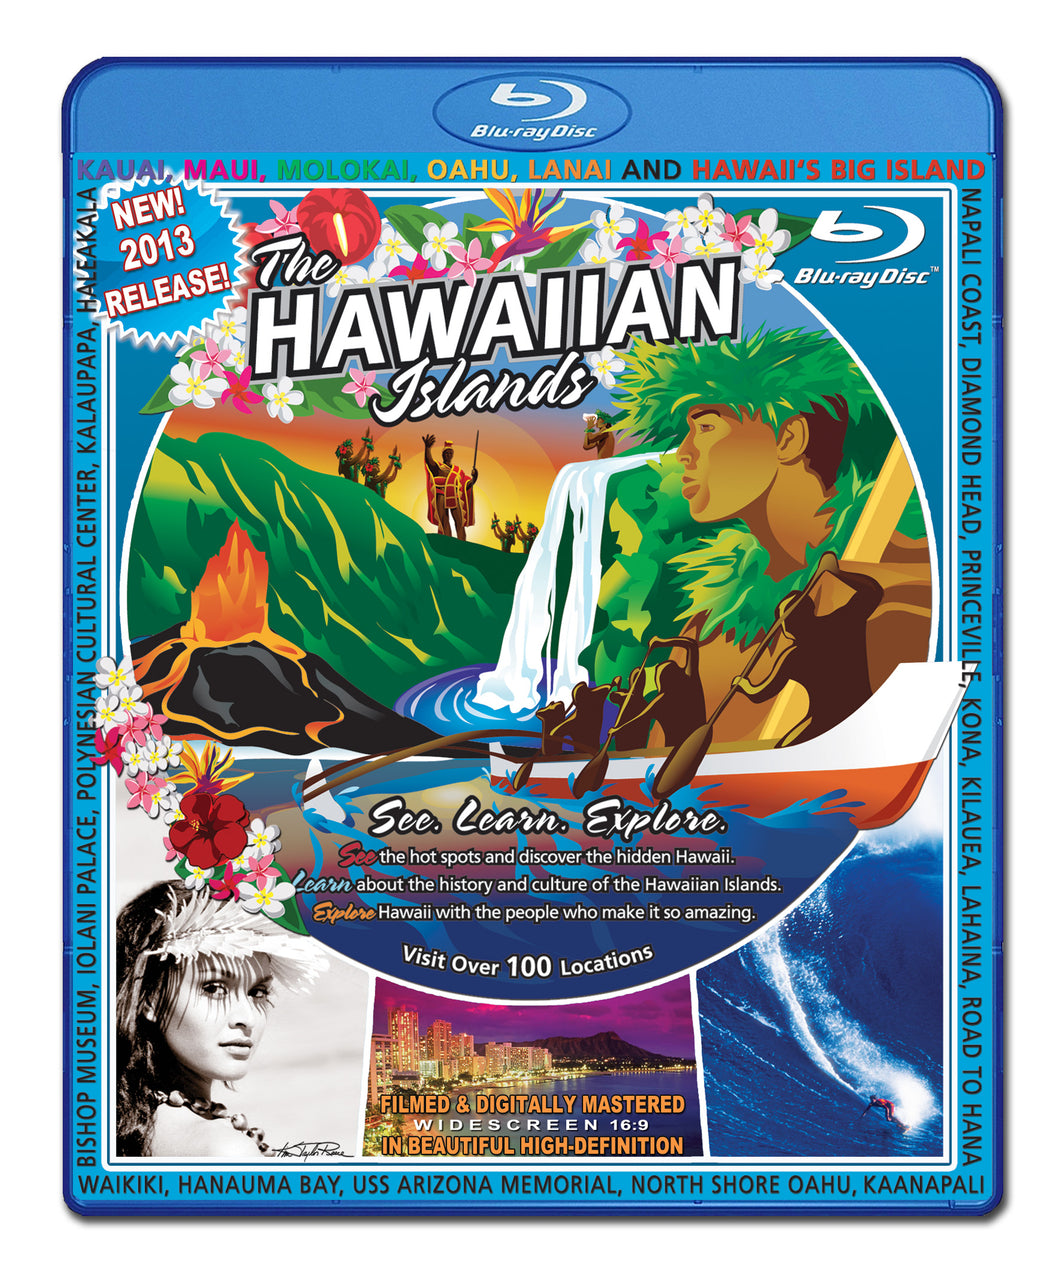 Video Postcard of the Hawaiian Islands Blu Ray